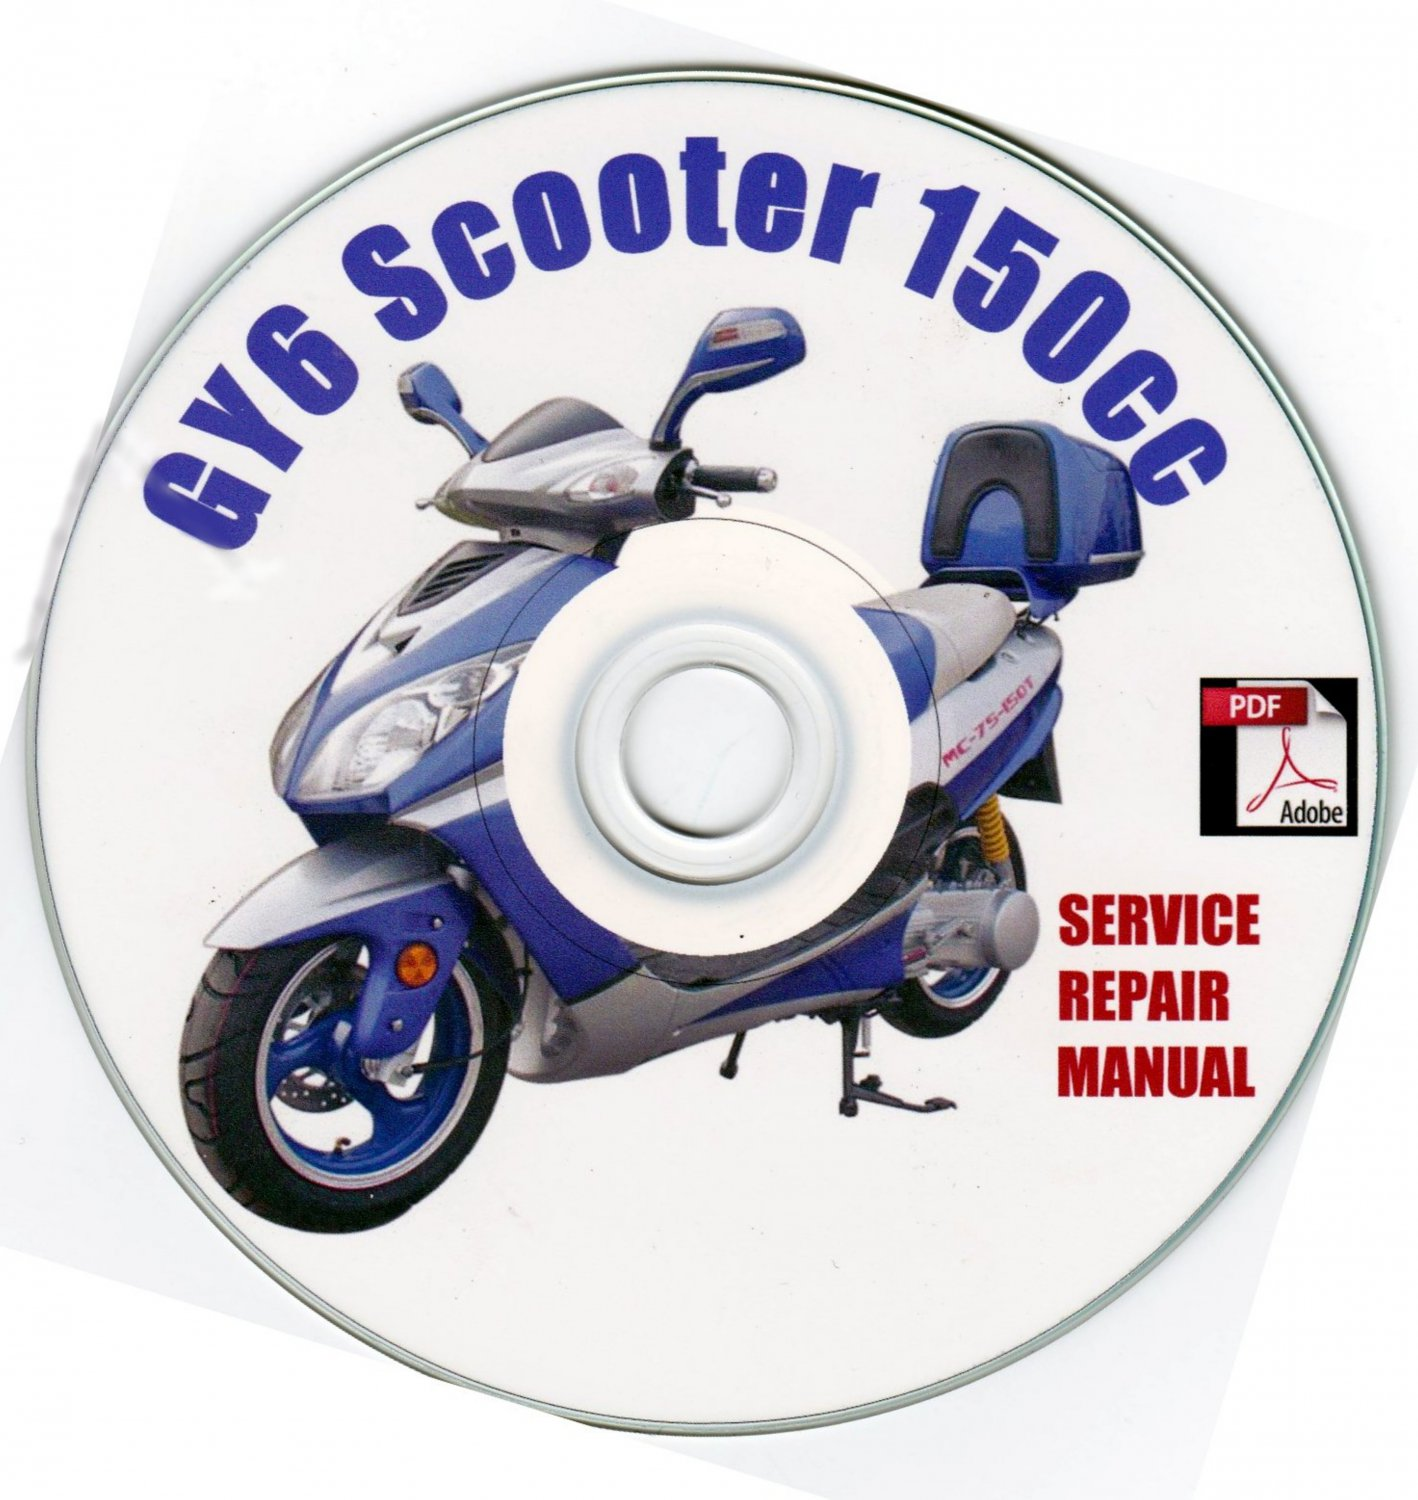 Cf Moto 150cc Scooter Wiring Diagram Trusted 2007 Roketa 2008 Manual Today Guide Trends Sample U2022 V5 Motorcycle